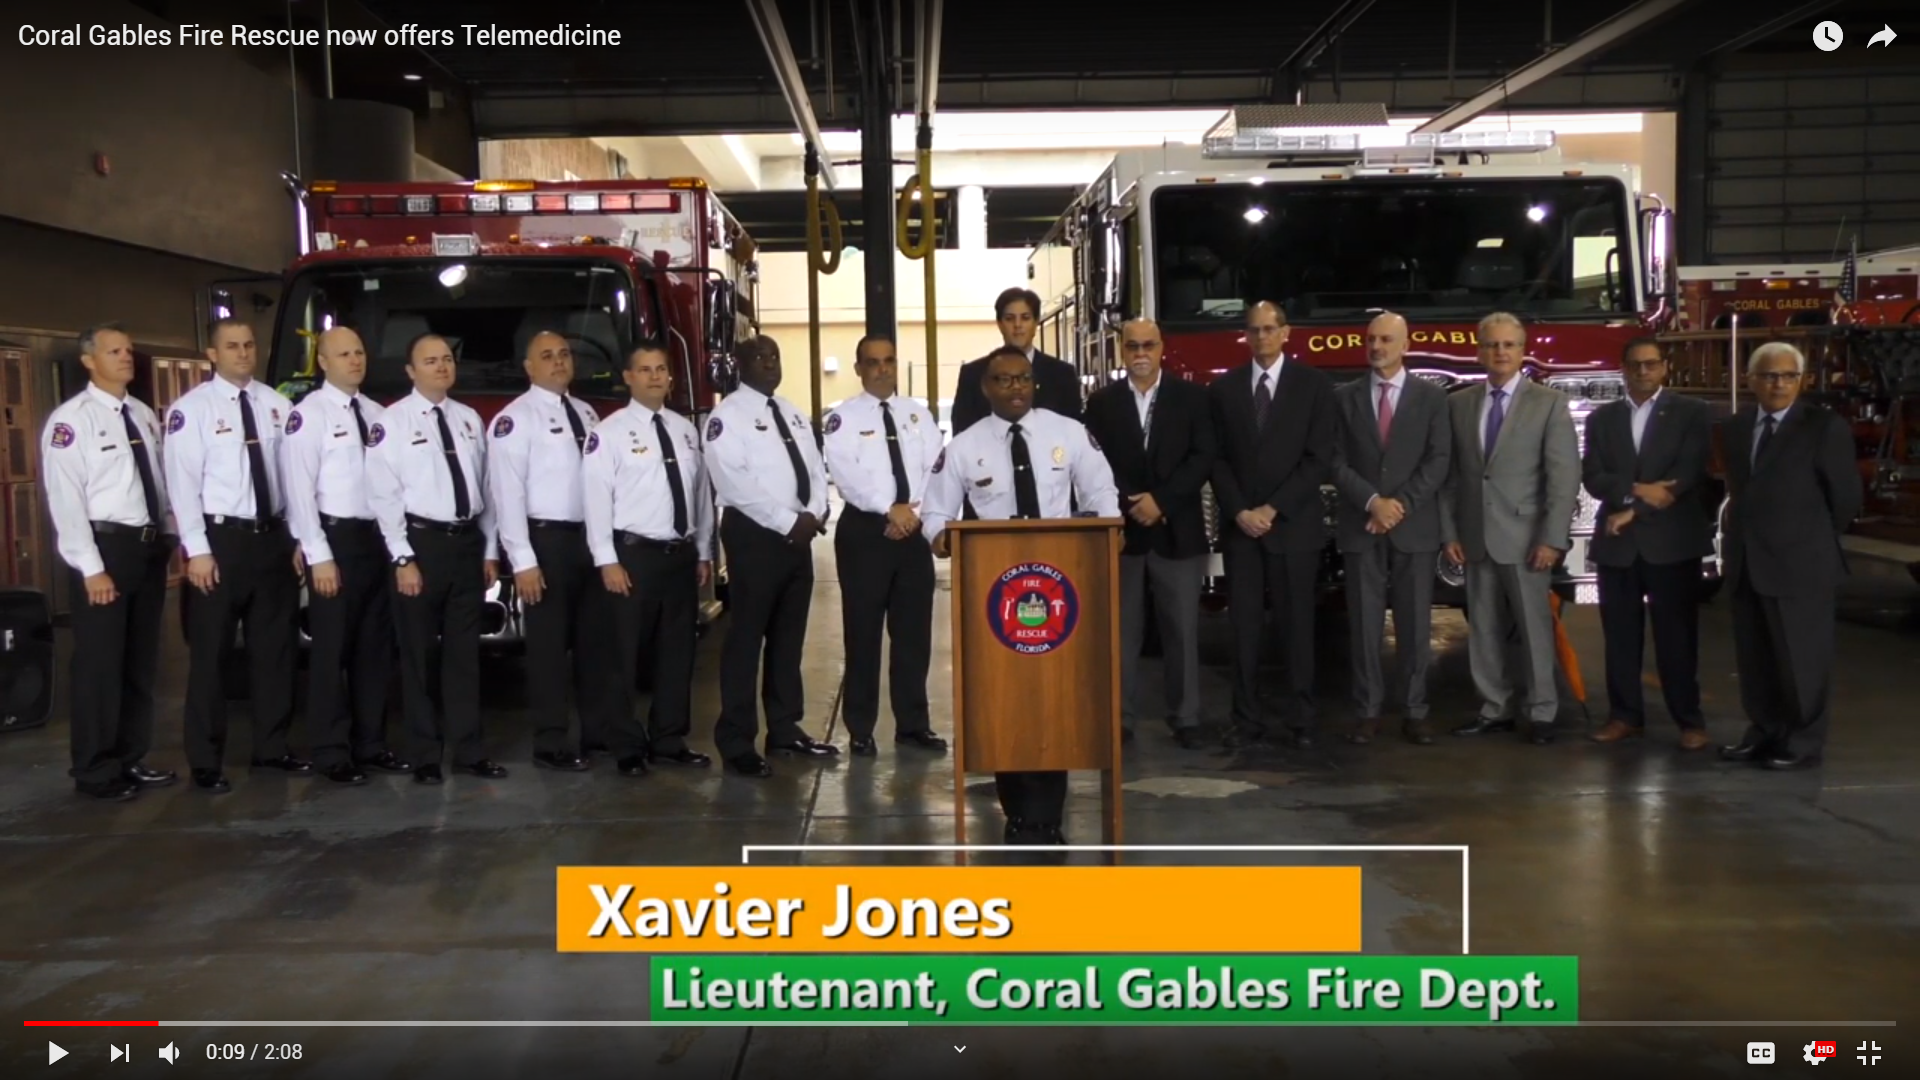 The Gordon Center to Partner with Coral Gables Fire Department, Specialty Telehealth Systems and Local Hospitals to Help Patients with Life Threatening Emergencies